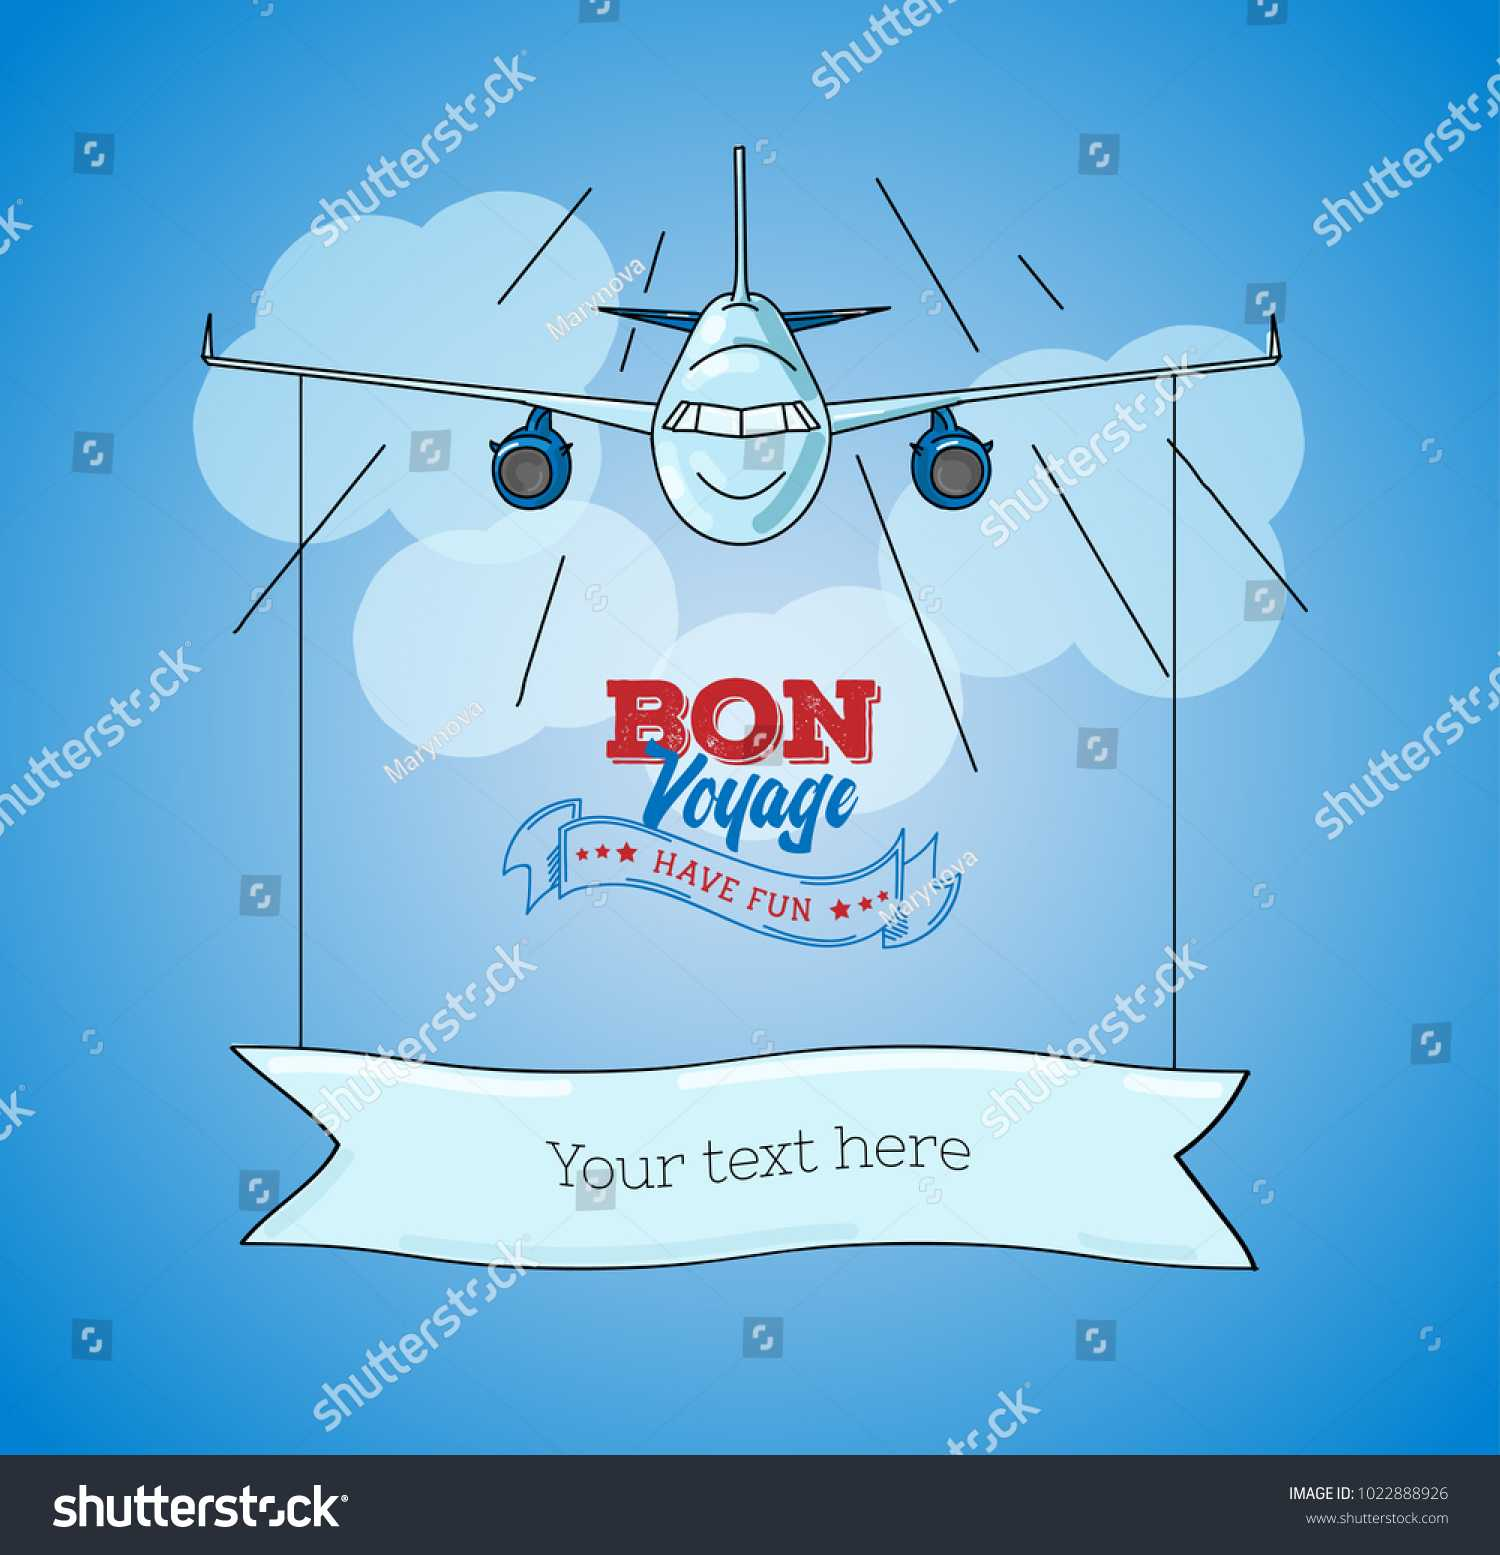 Card Template Plane Graphic Illustration On Stock Vector Pertaining To Bon Voyage Card Template